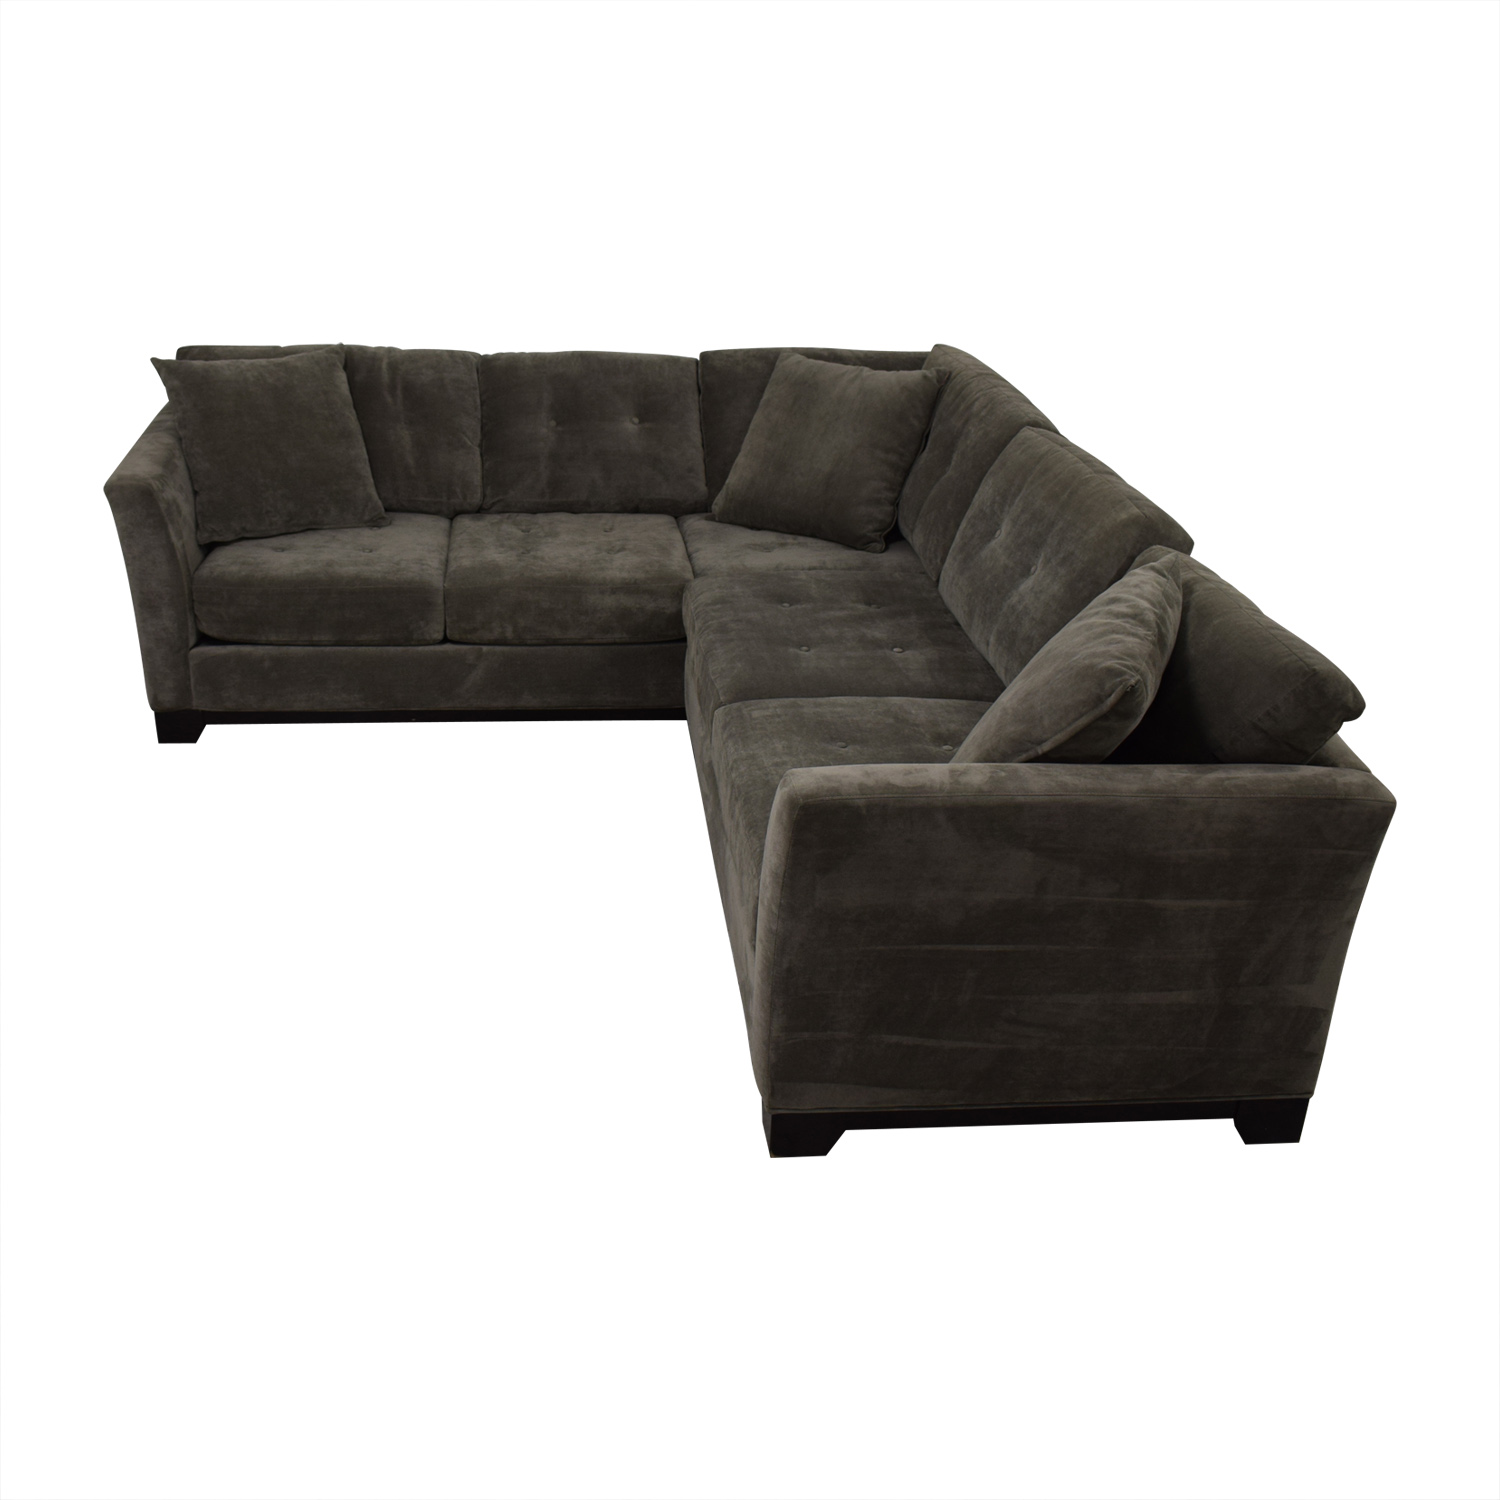 shop Jonathan Louis Tufted Grey Microfiber L-Shaped Sectional Jonathan Louis Sectionals